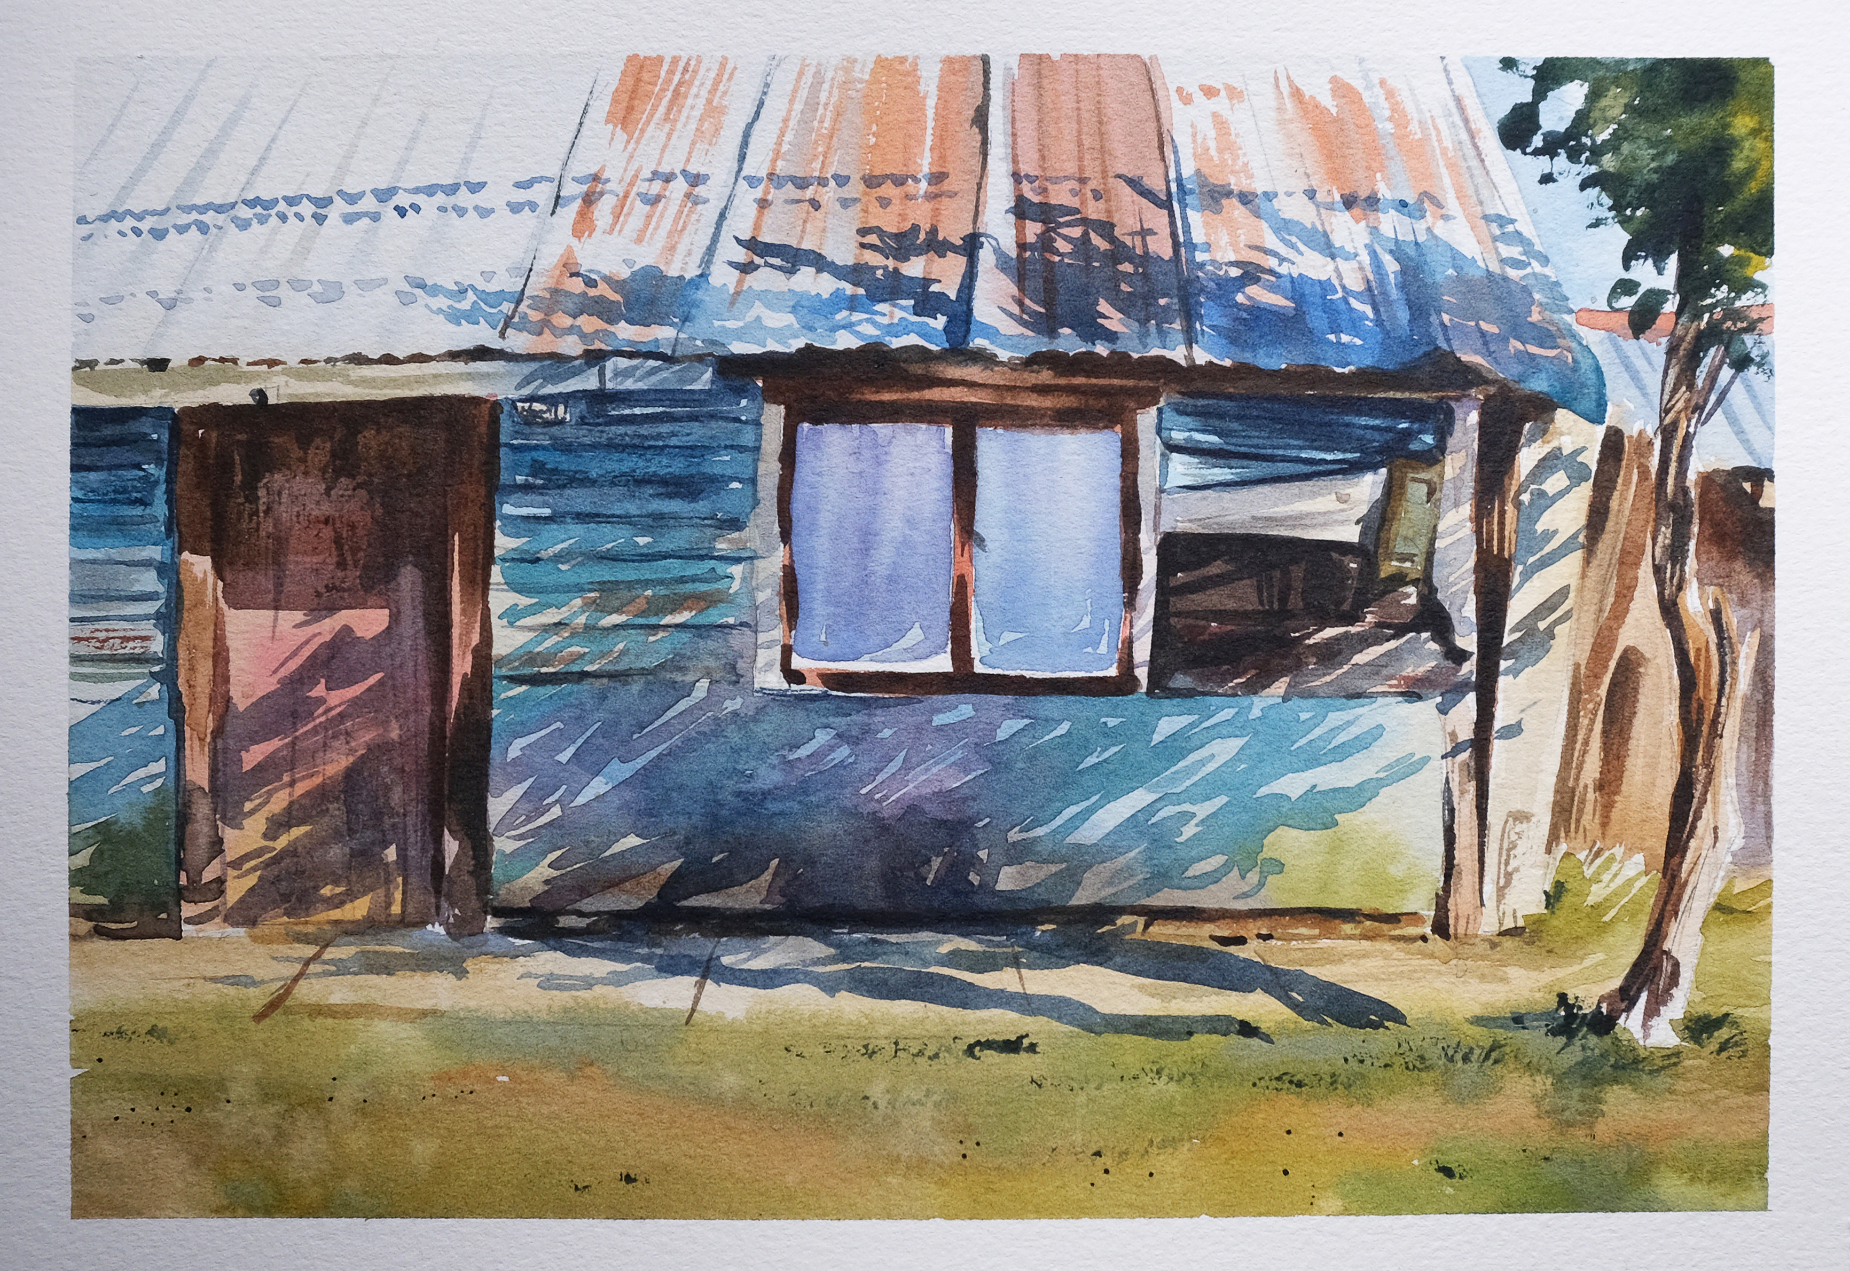 Watercolour painting of a building with a shadow from a nearby tree cast upon it.